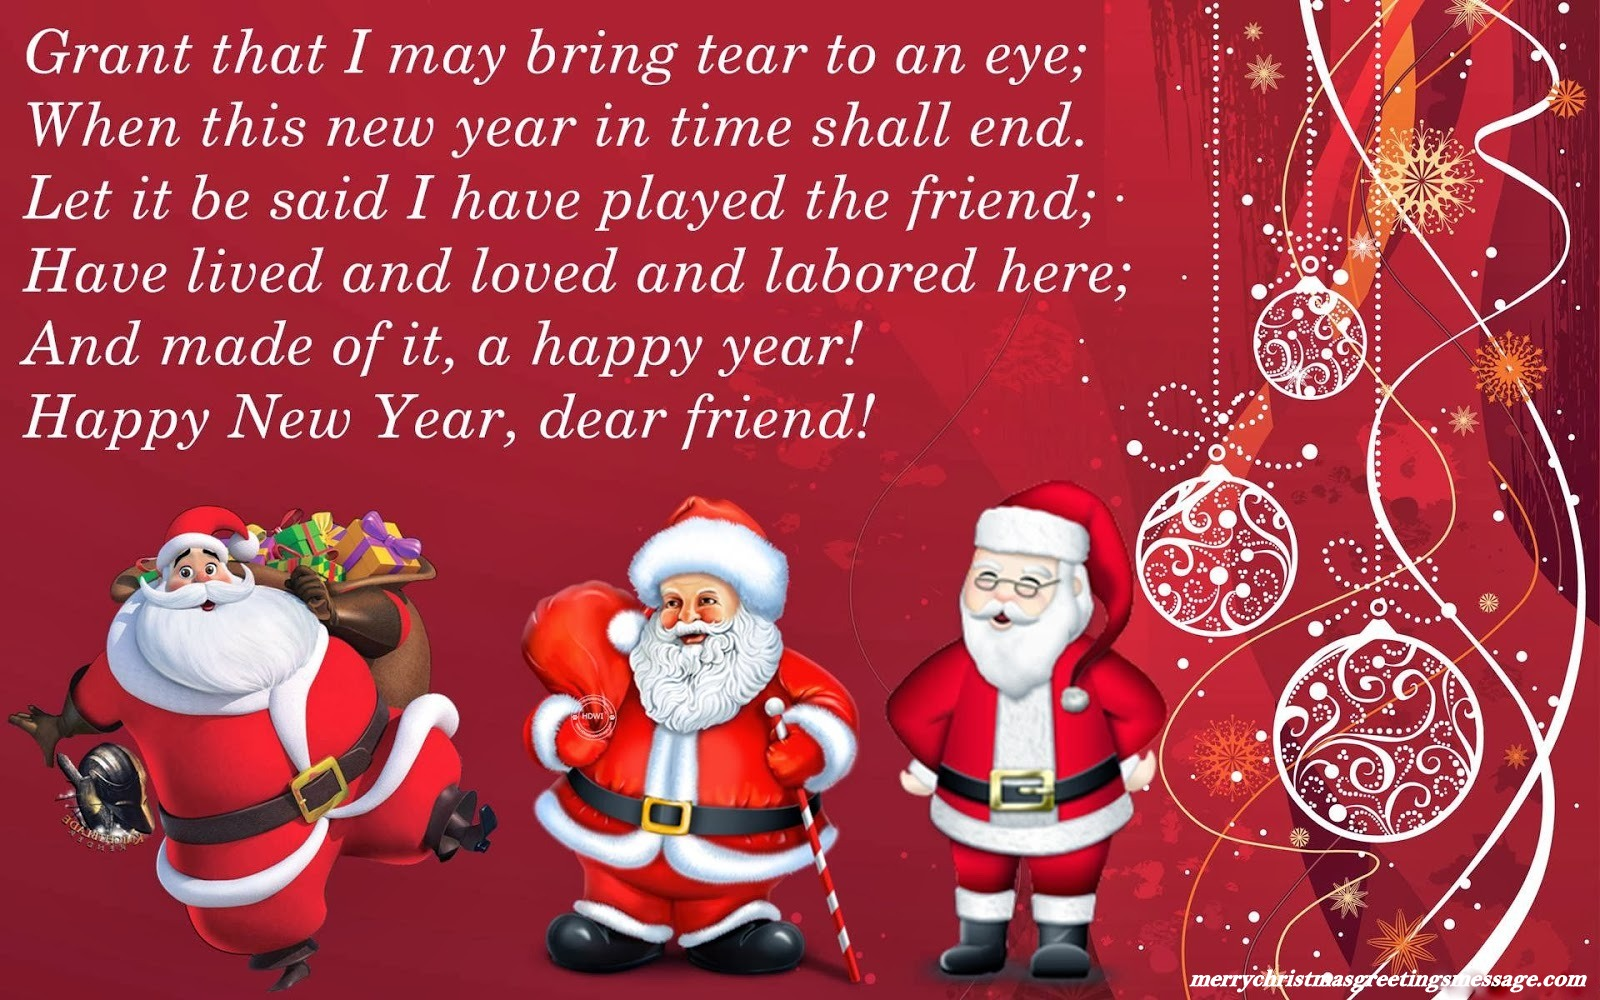 Merry christmas wishes messages quotes for friends family everyone merry christmas messages m4hsunfo